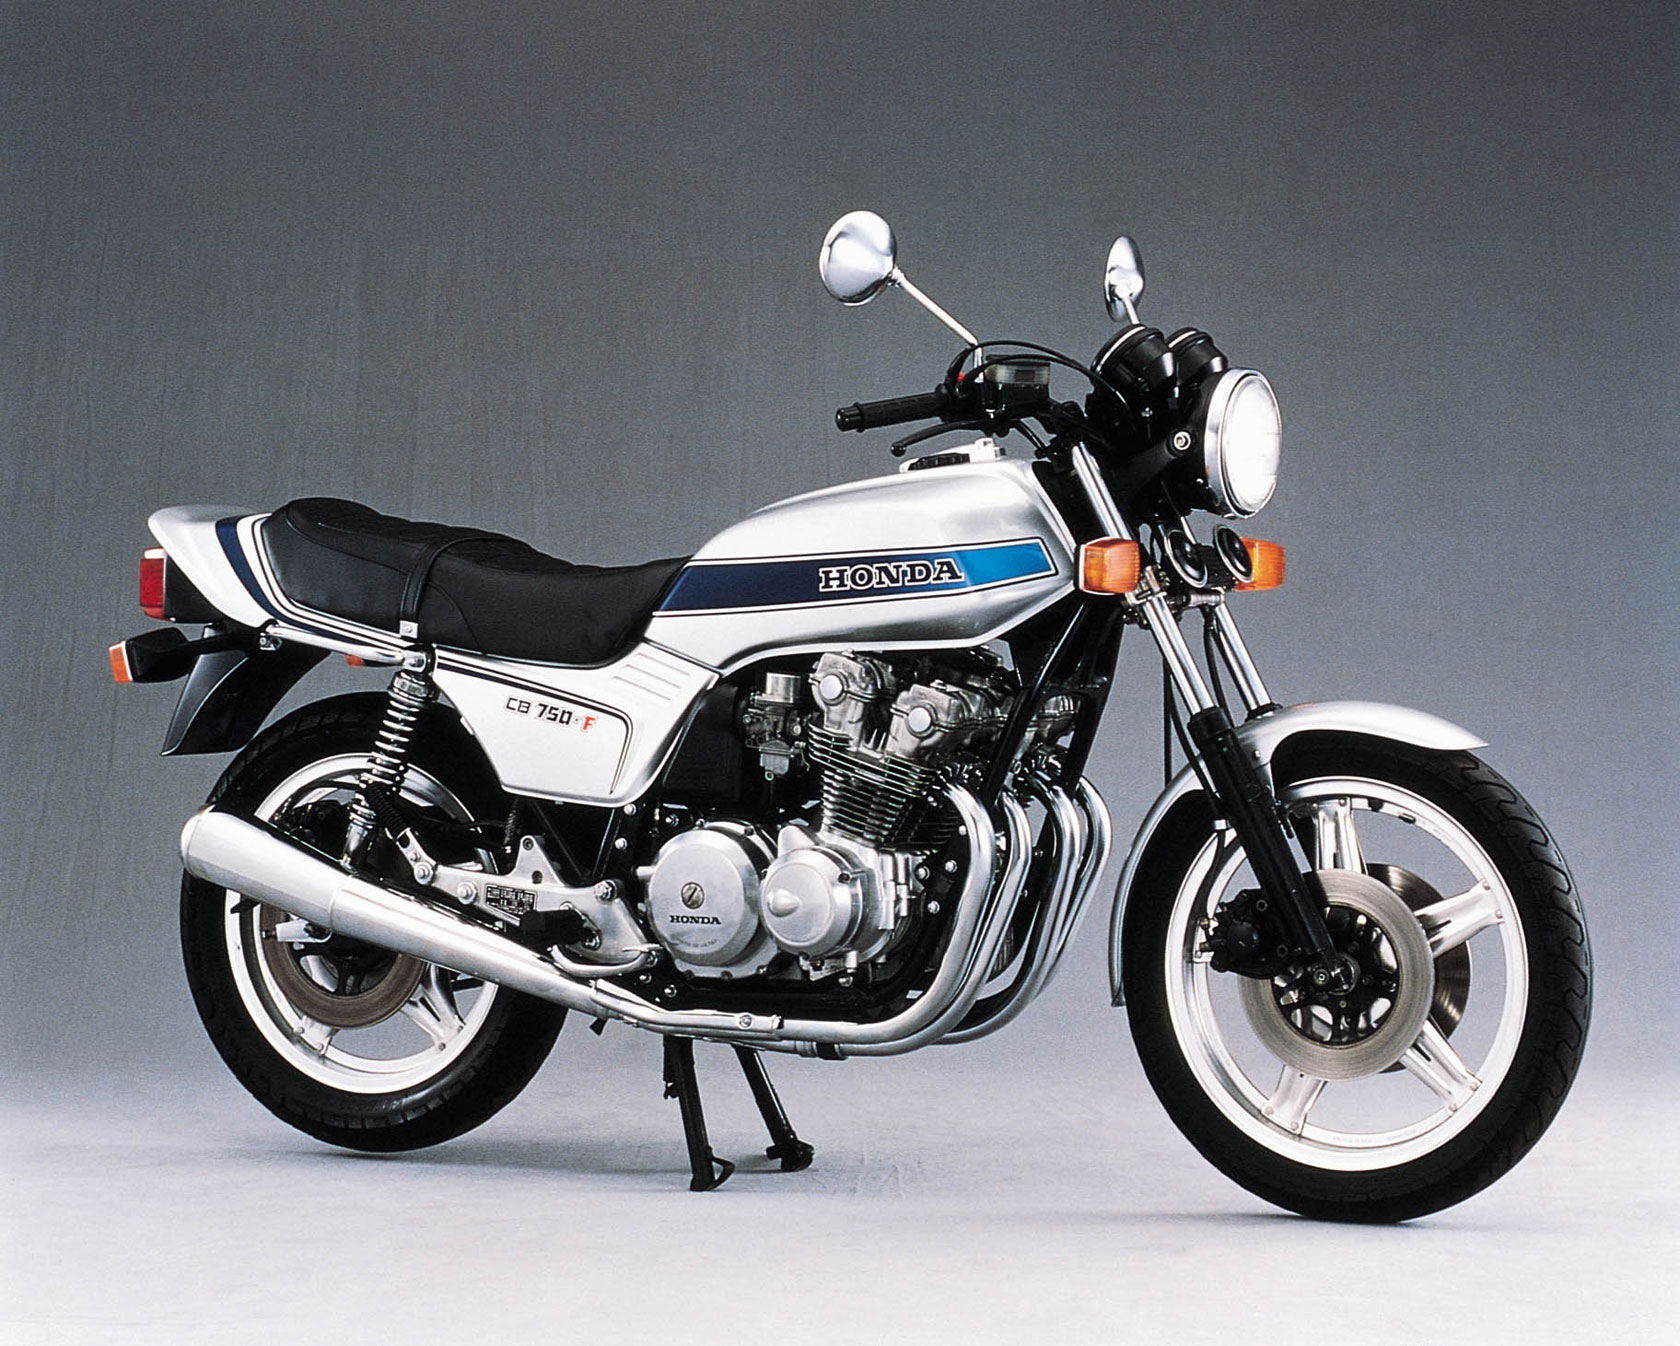 And the 1979 cbx to a lesser degree